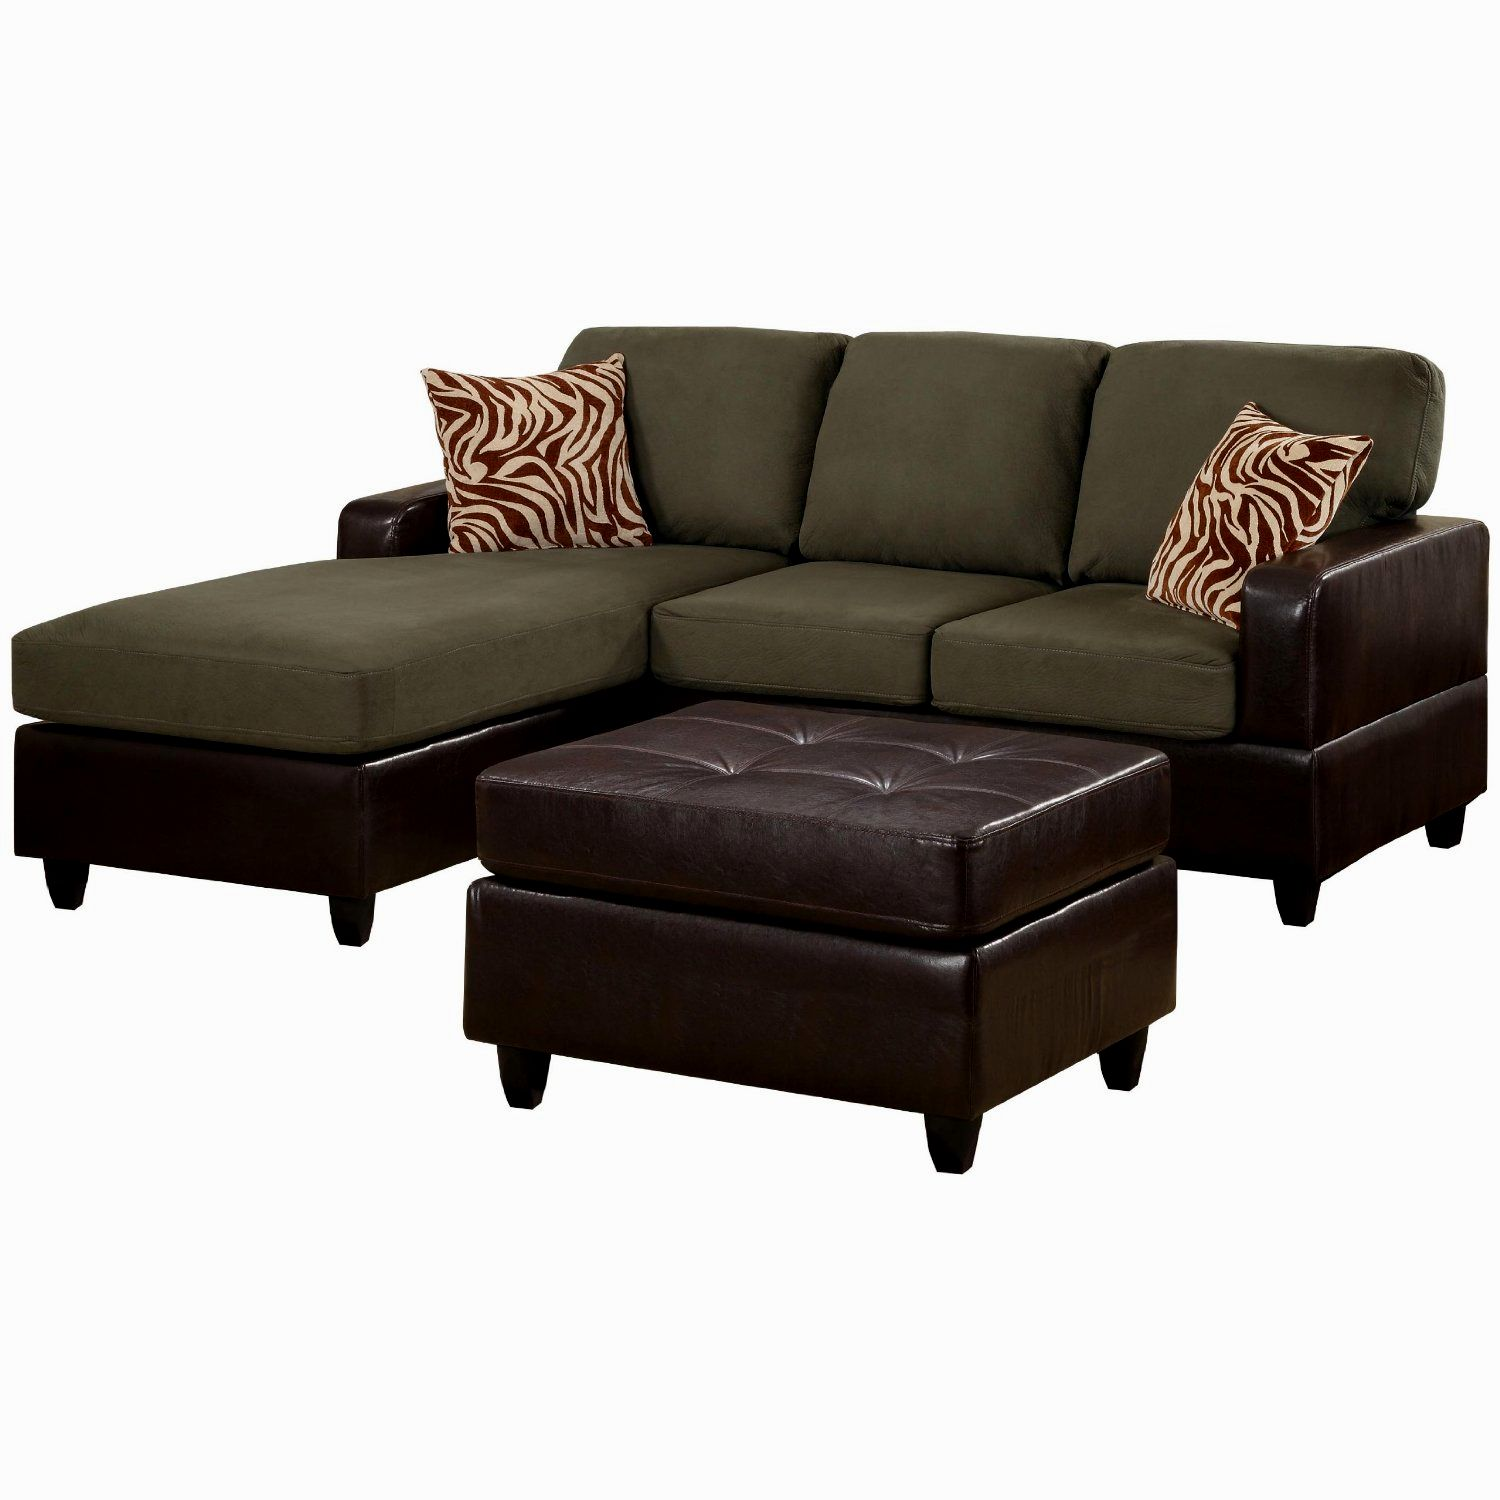 beautiful sectional sofas for small spaces layout-Elegant Sectional sofas for Small Spaces Construction